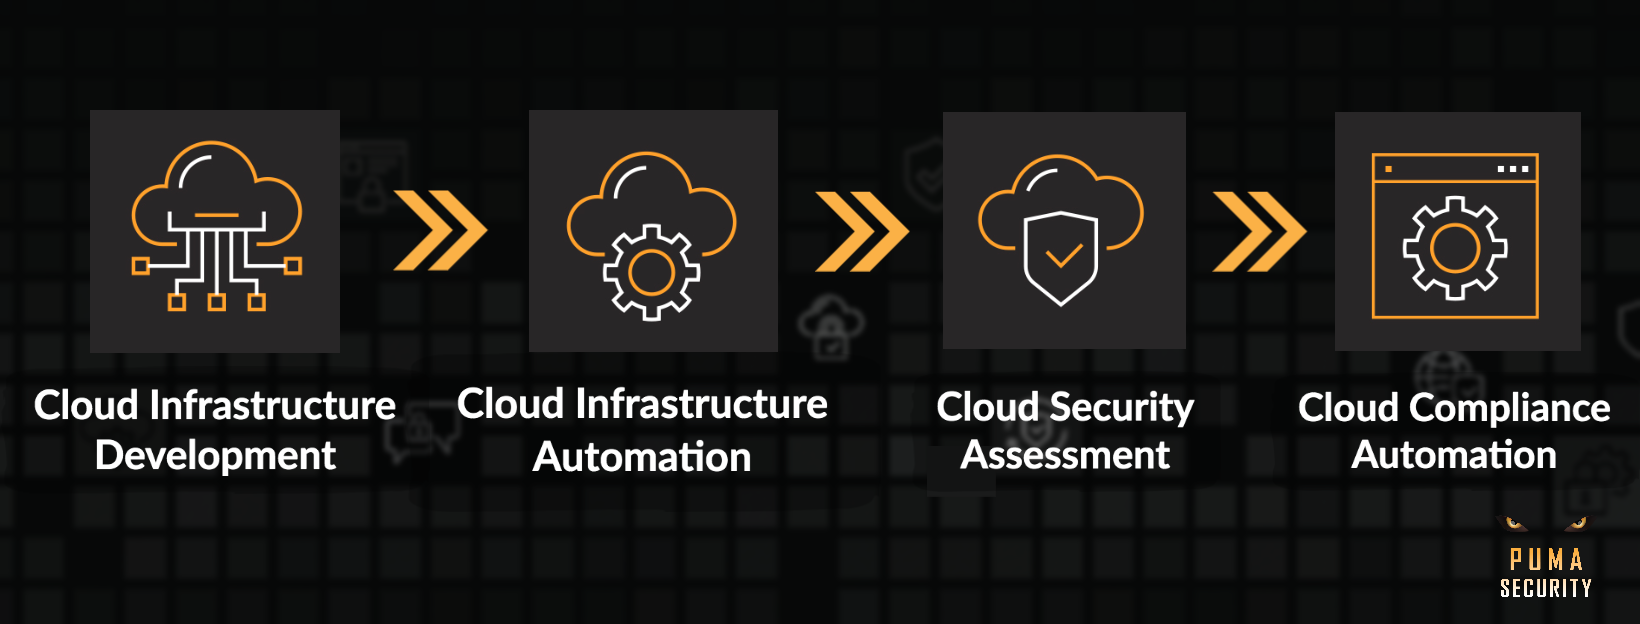 Implementation of Security in Cloud Infrastructure